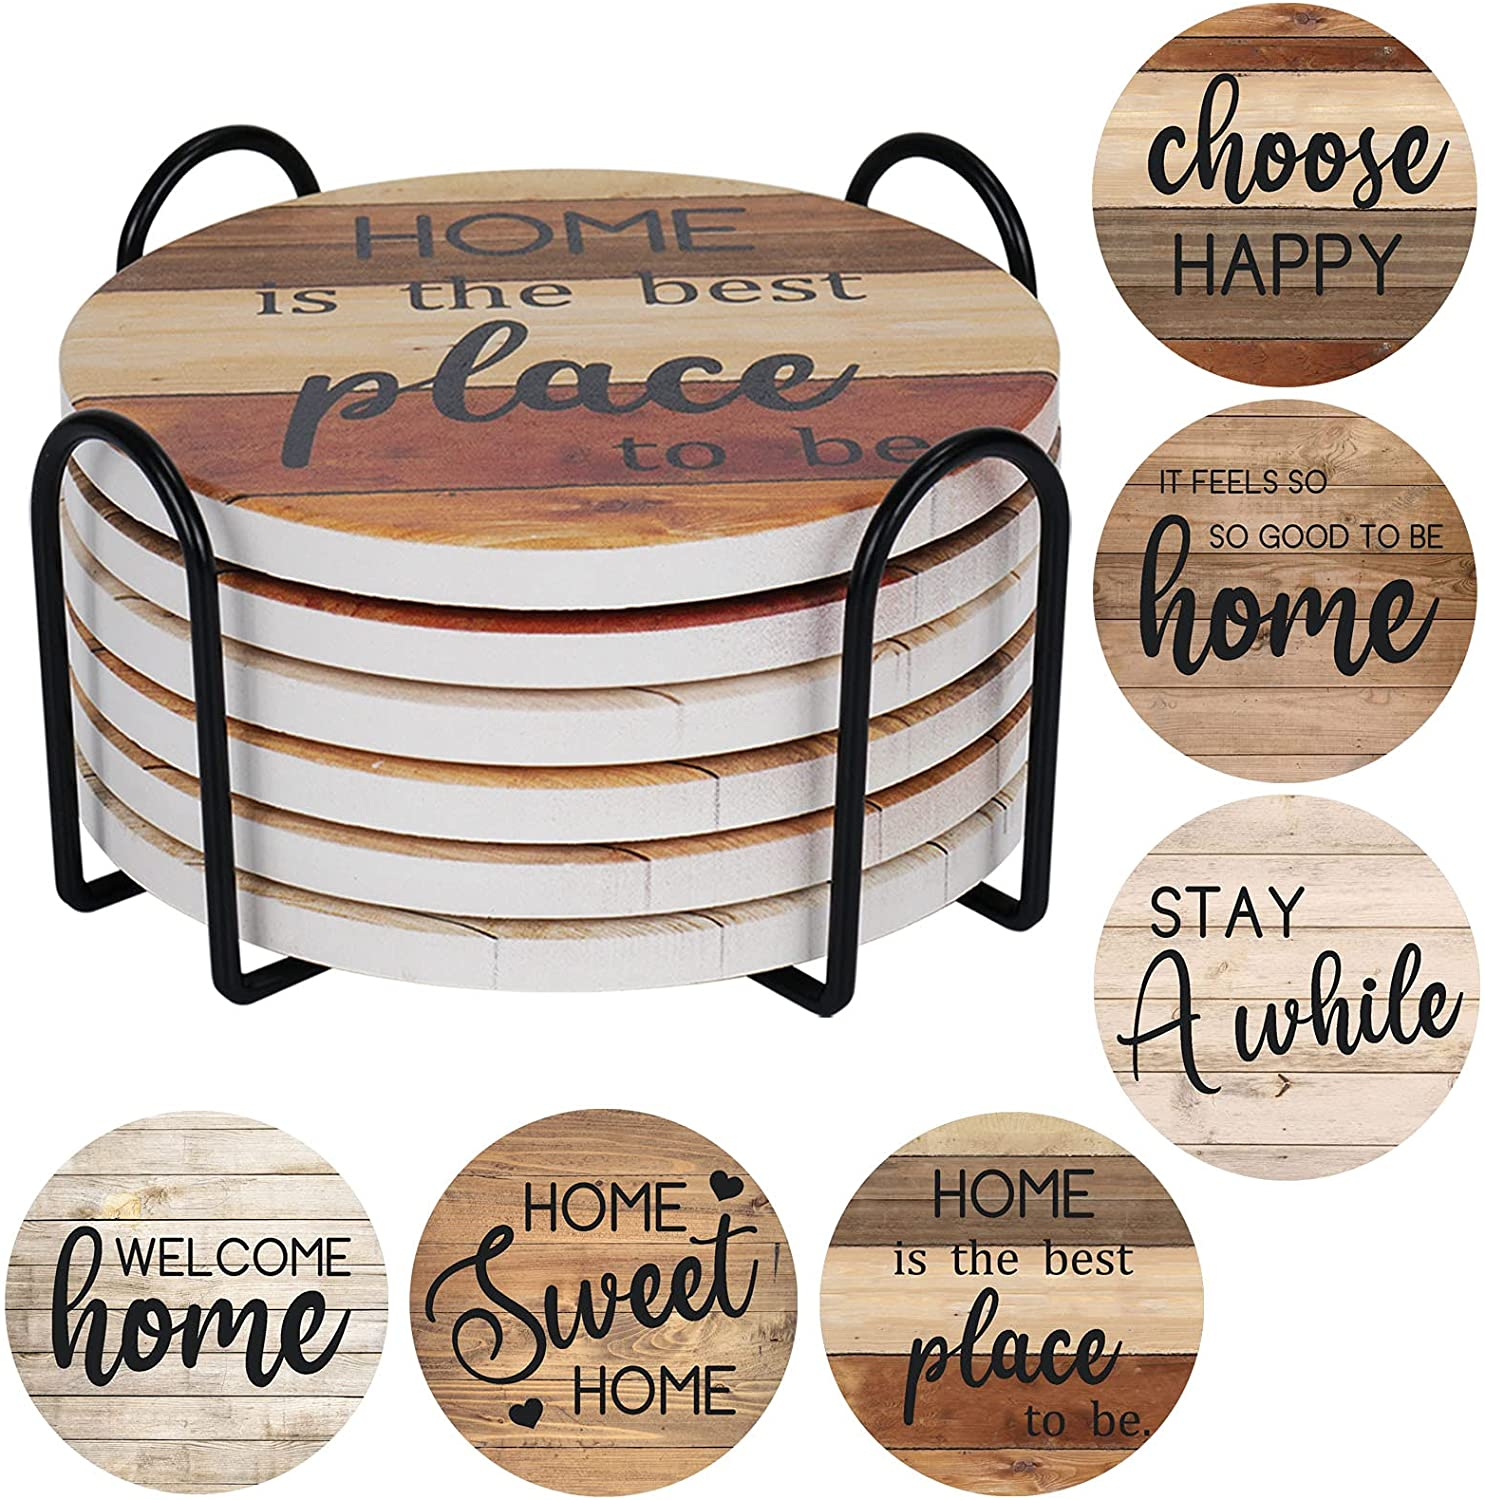 Coasters for Drinks Rustic Farmhouse Stone Cork Coasters, Set of 6 Drink Coaster with Holder for Wooden Table Housewarming Gift New Home Apartment Kitchen House Decor Gift Set for Women Men